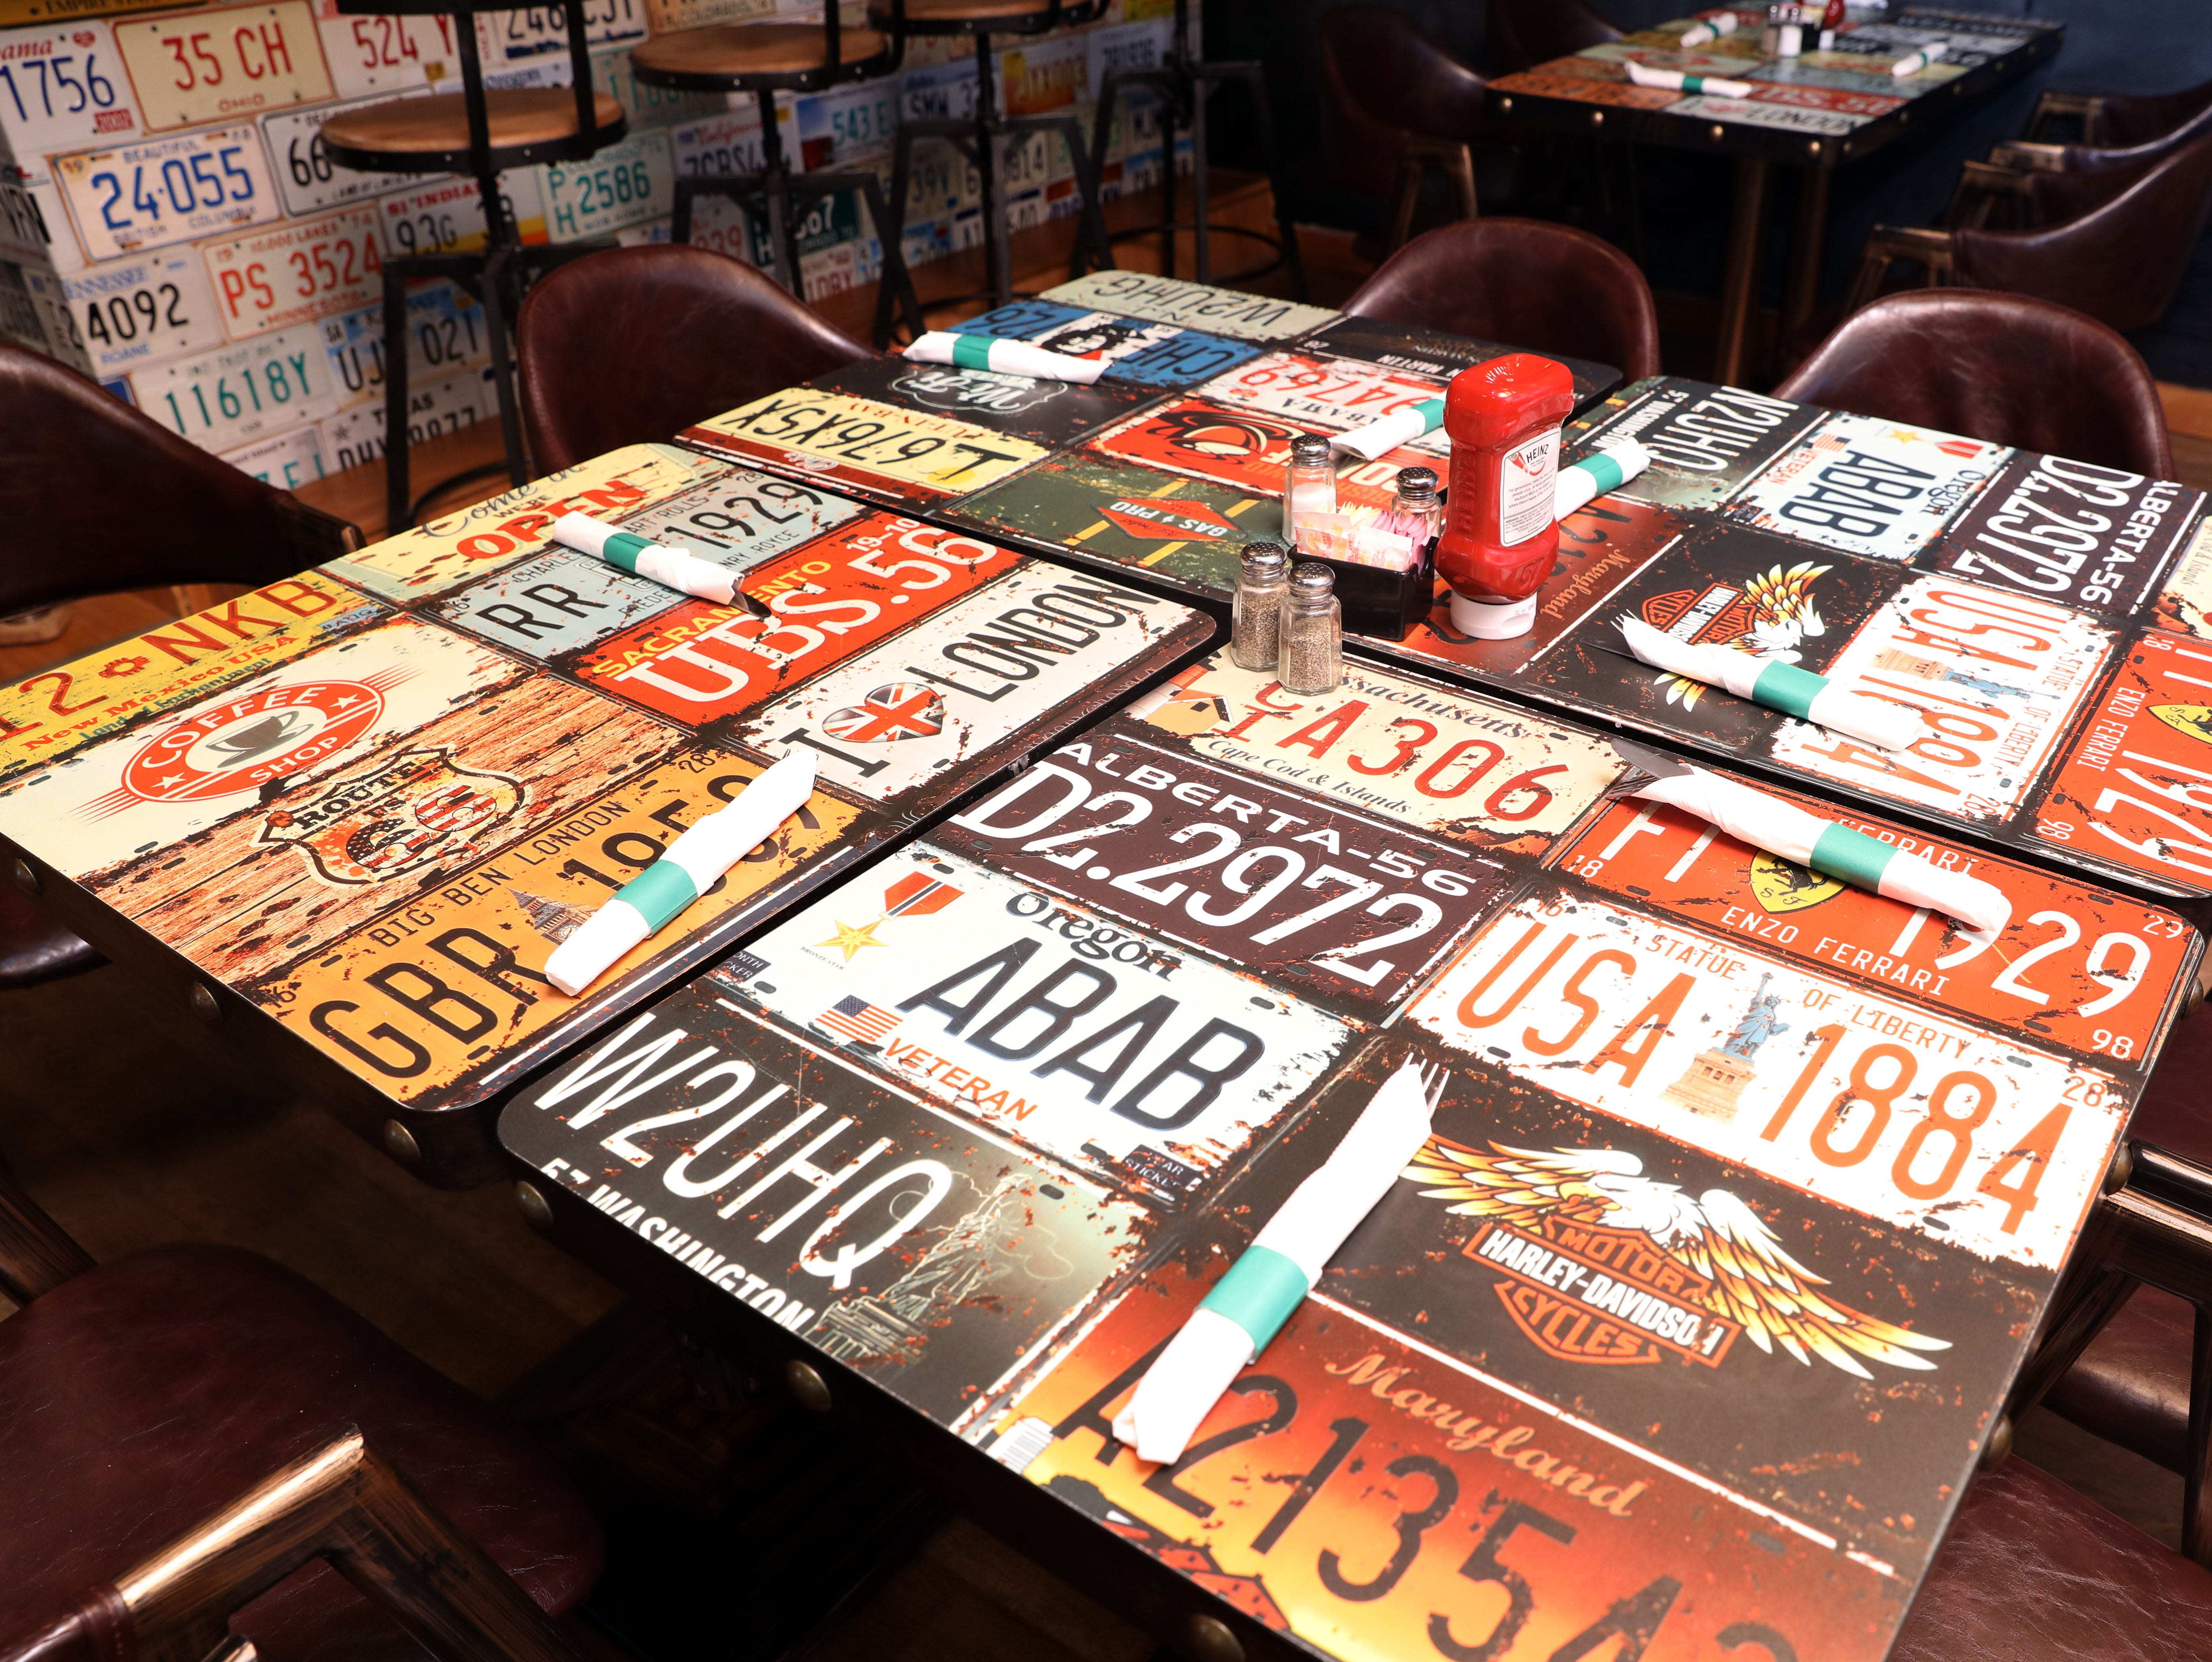 License plates cover the tables at Knuckles Incorporated, a new restaurant in Stony Point, Nov. 26, 2018.